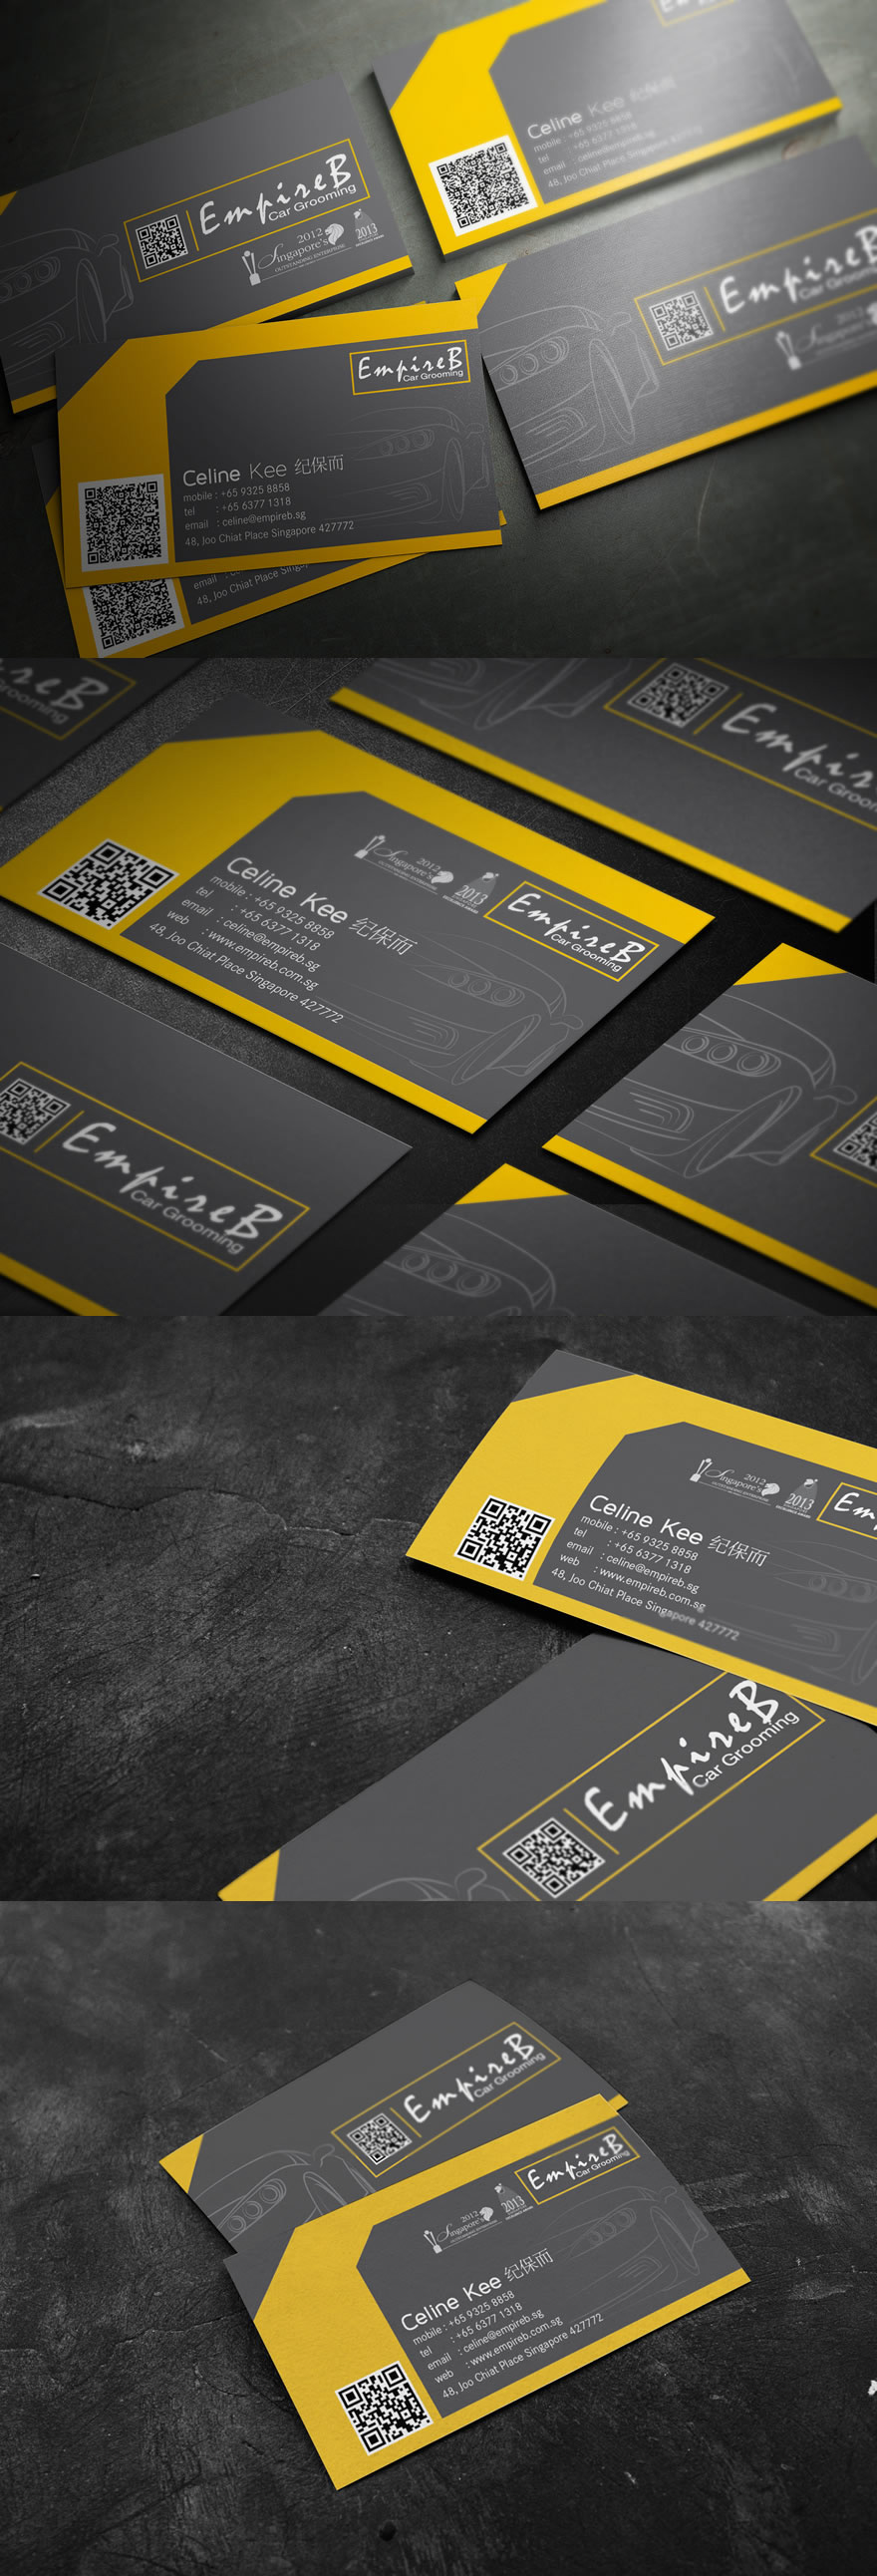 Lemon graphic singapore business card graphic design designer empireb car grooming business card design magicingreecefo Images